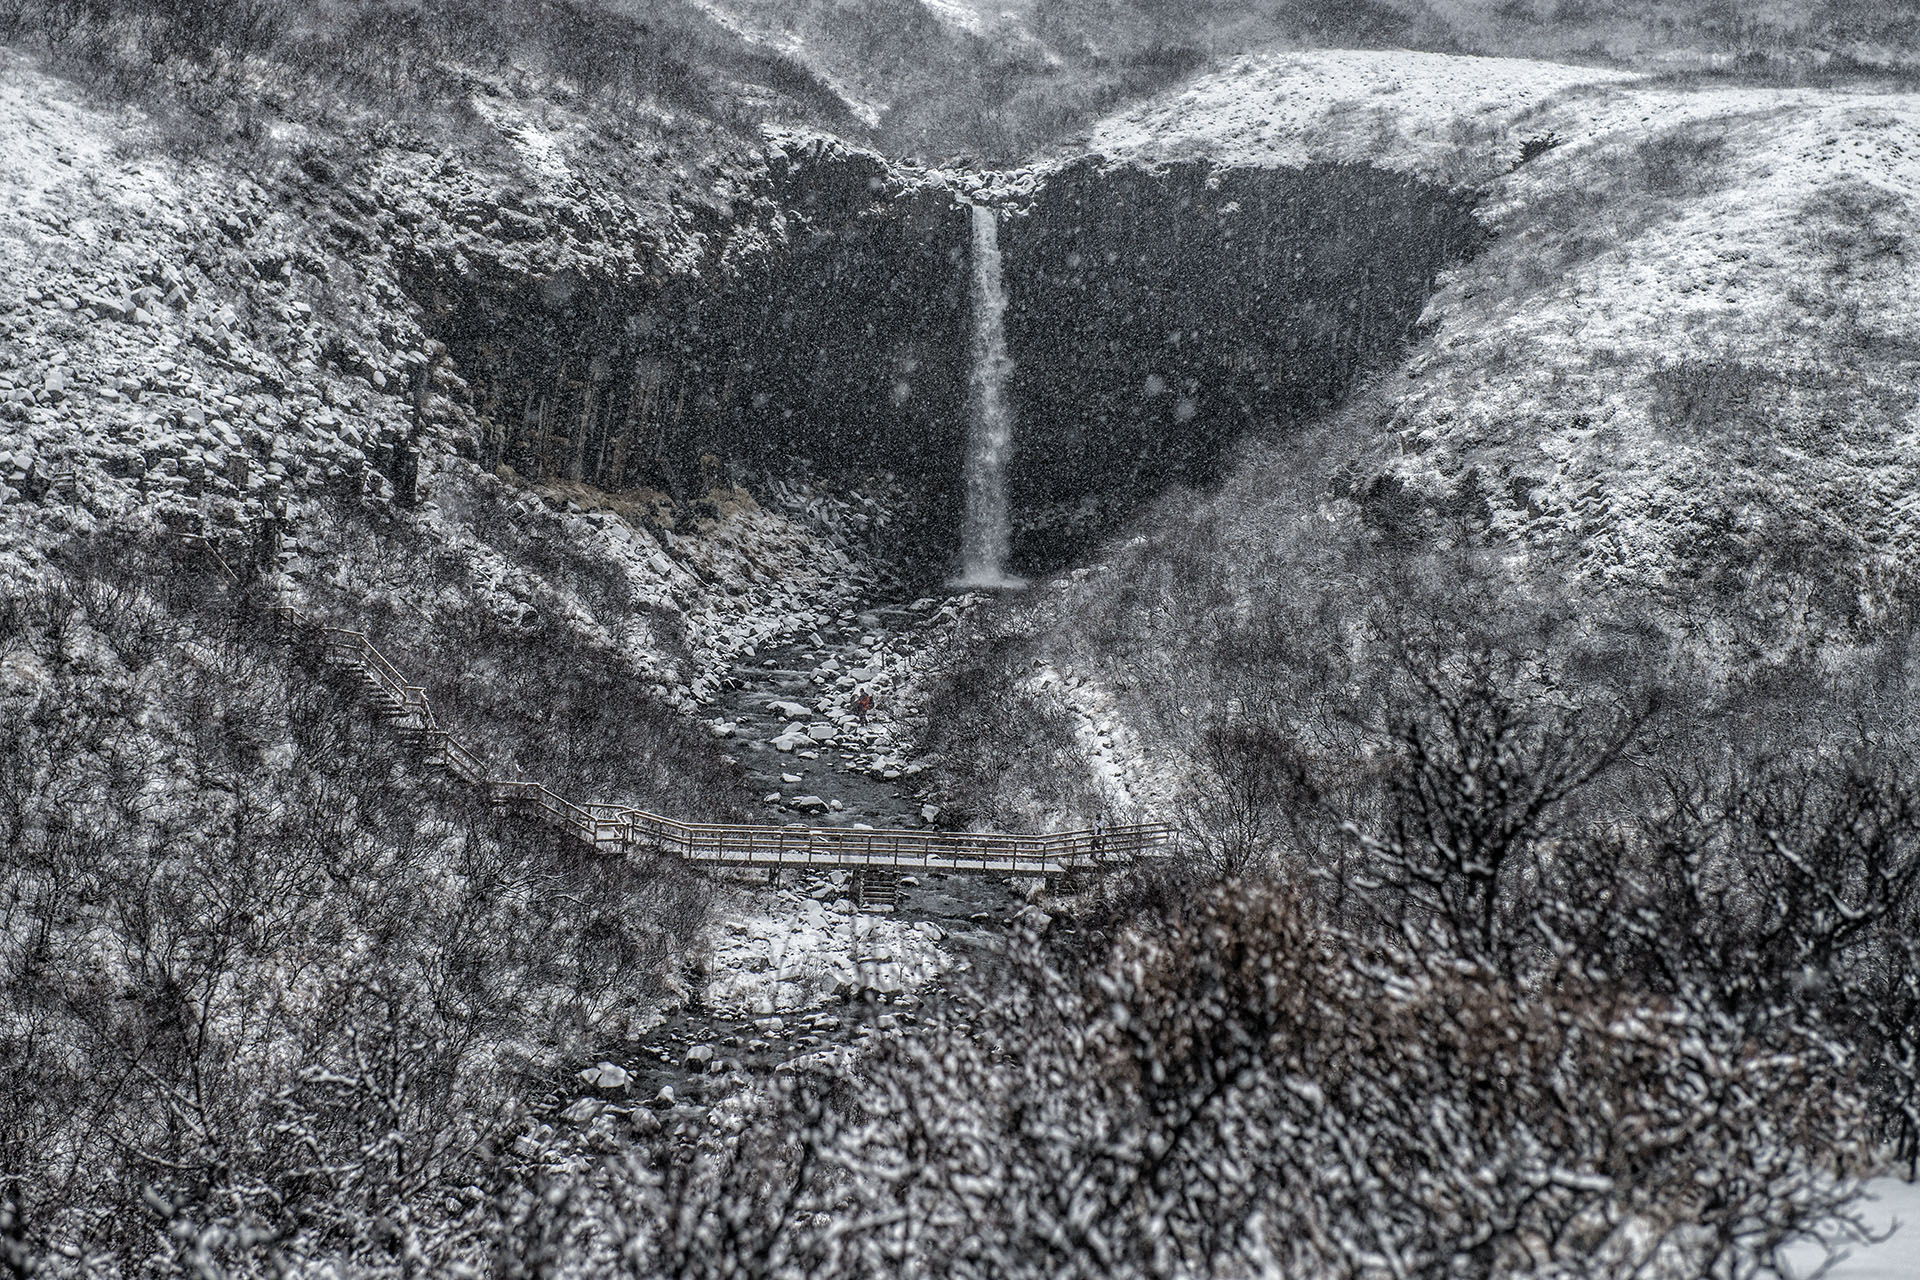 Islanda, neve a Svartifoss - Iceland, snowing on Svartifoss - Images of Iceland in winter time